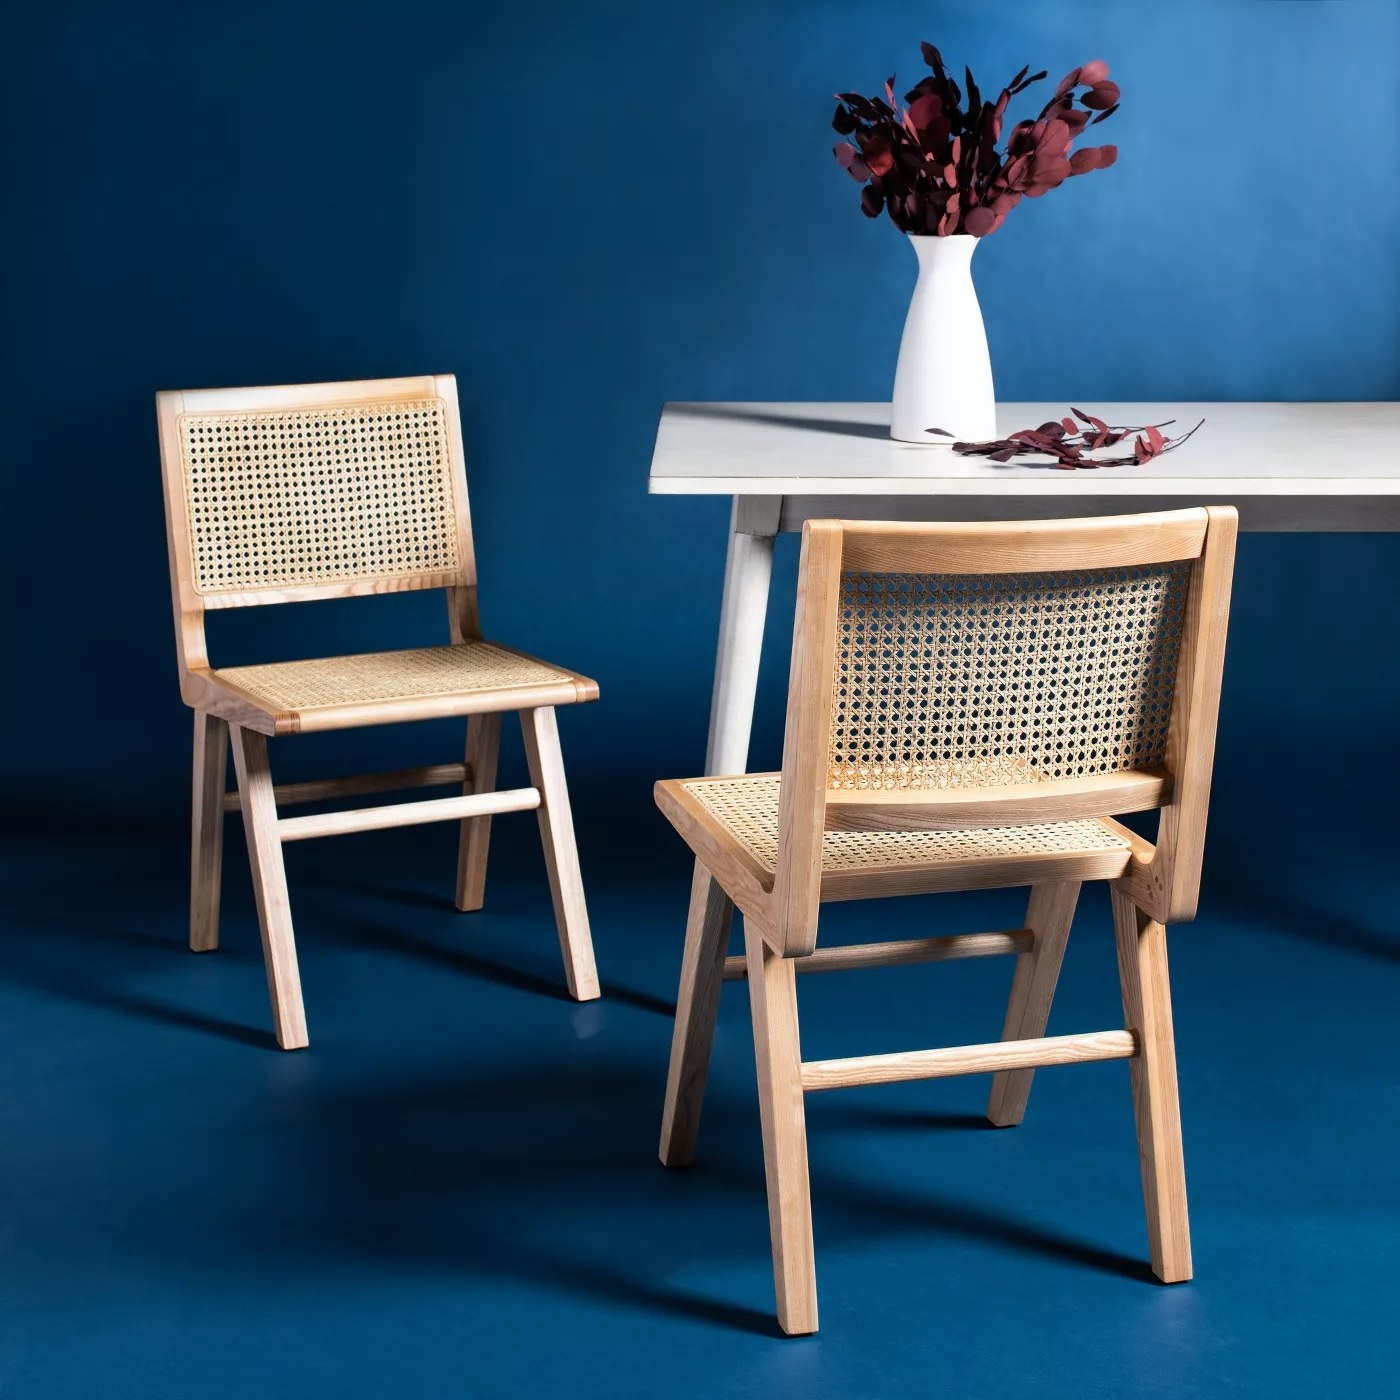 The dining chairs in natural